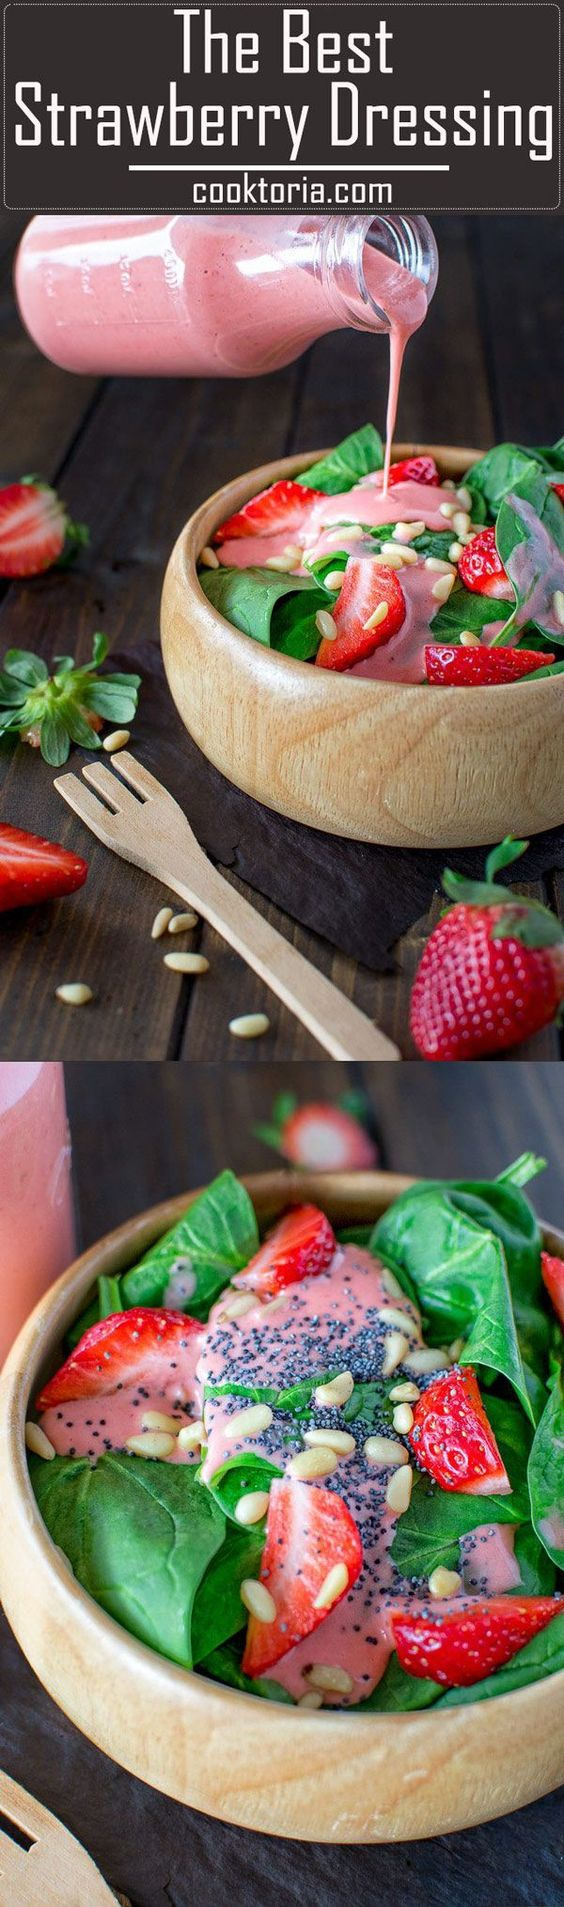 Erfrischendes Leckeres Sommer Salat Dressing mit Erdbeeren *** This really is The Best Strawberry Dressing and it's seriously addicting. It is simple to make and tastes great on many salads ❤